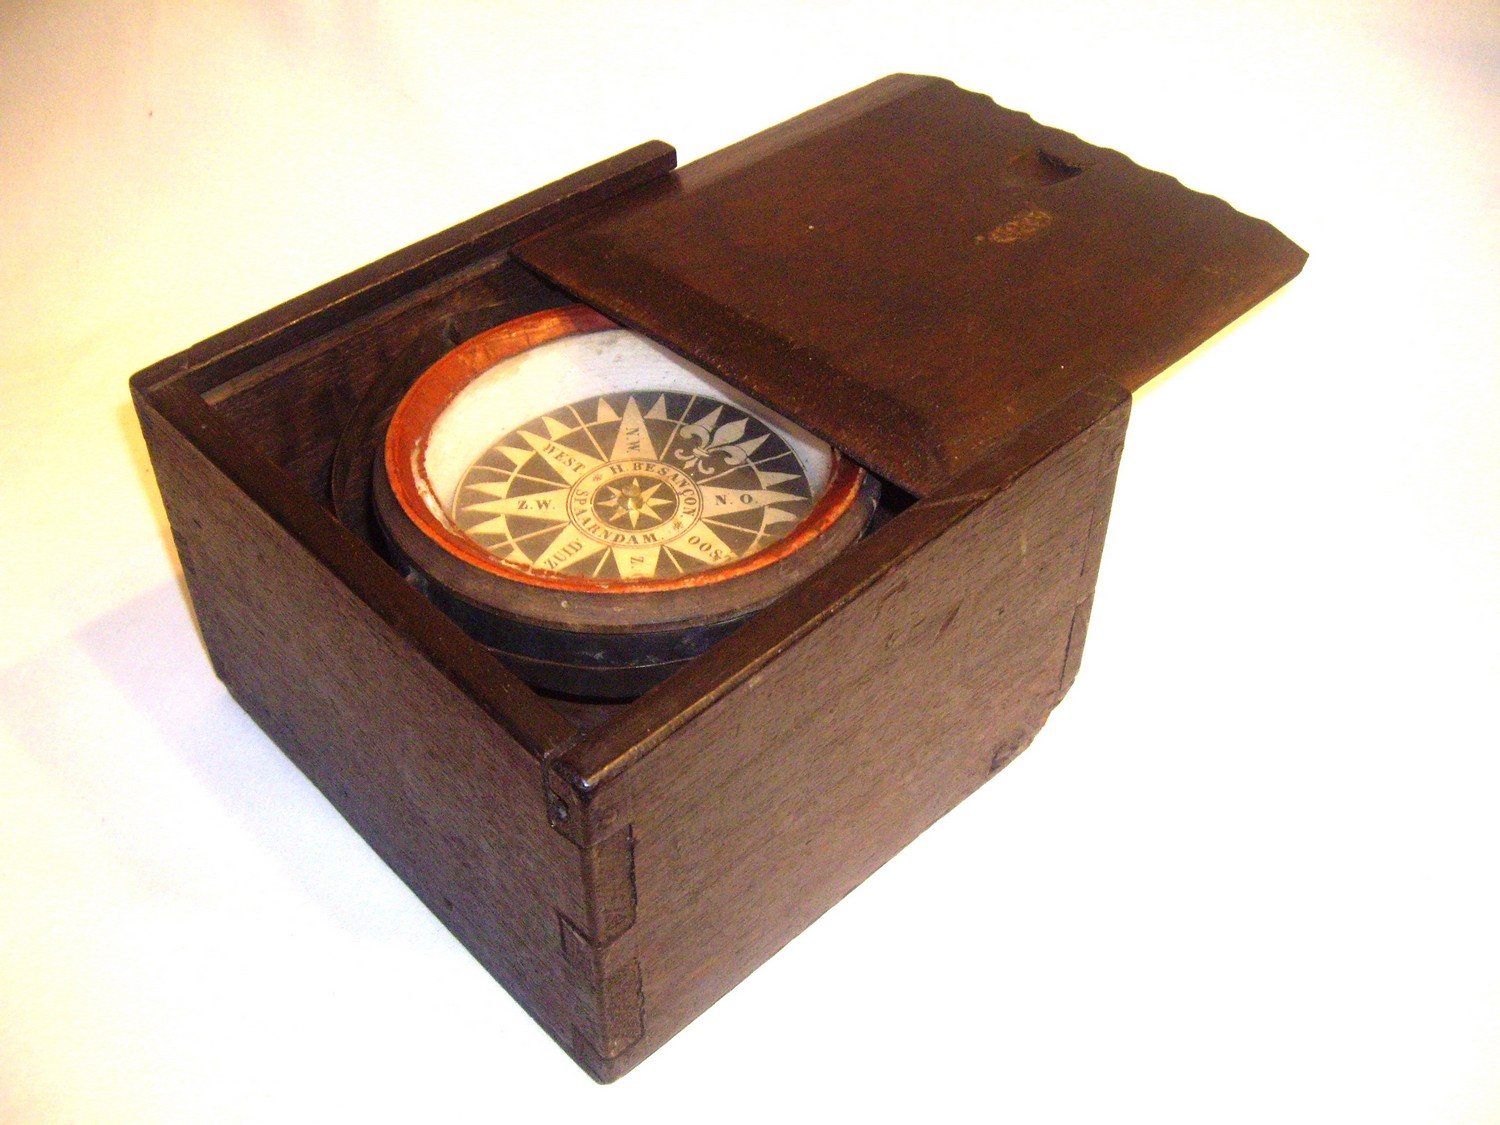 17TH CENTURY DUTCH DRY COMPASS